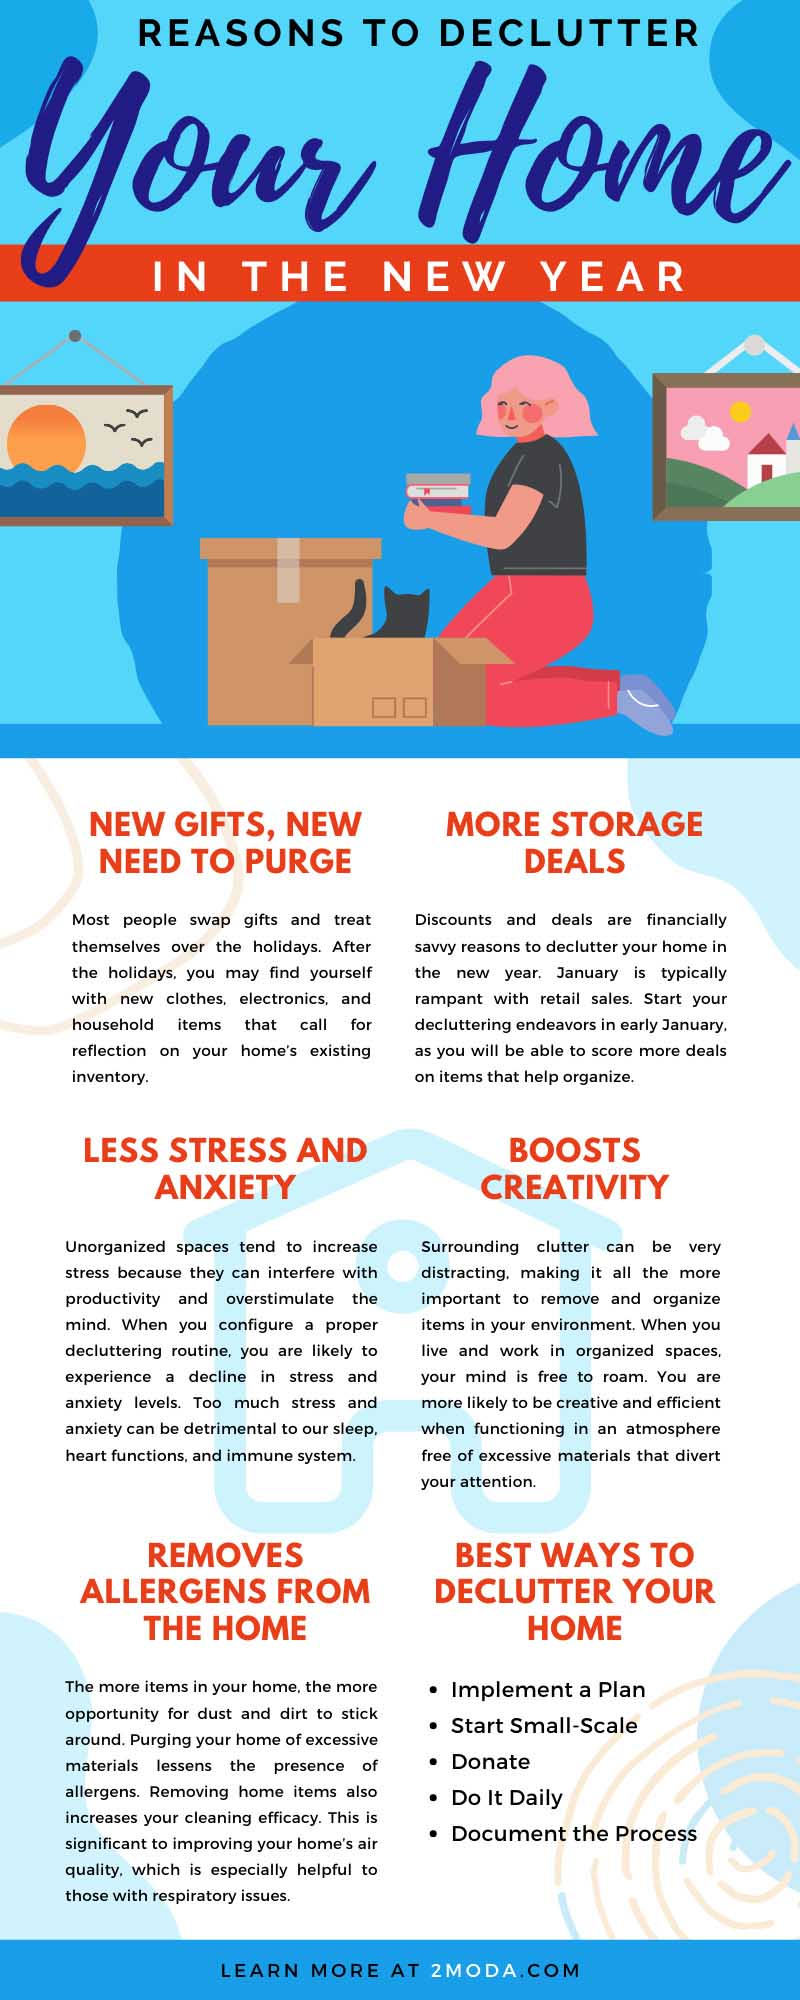 Reasons To Declutter Your Home in the New Year